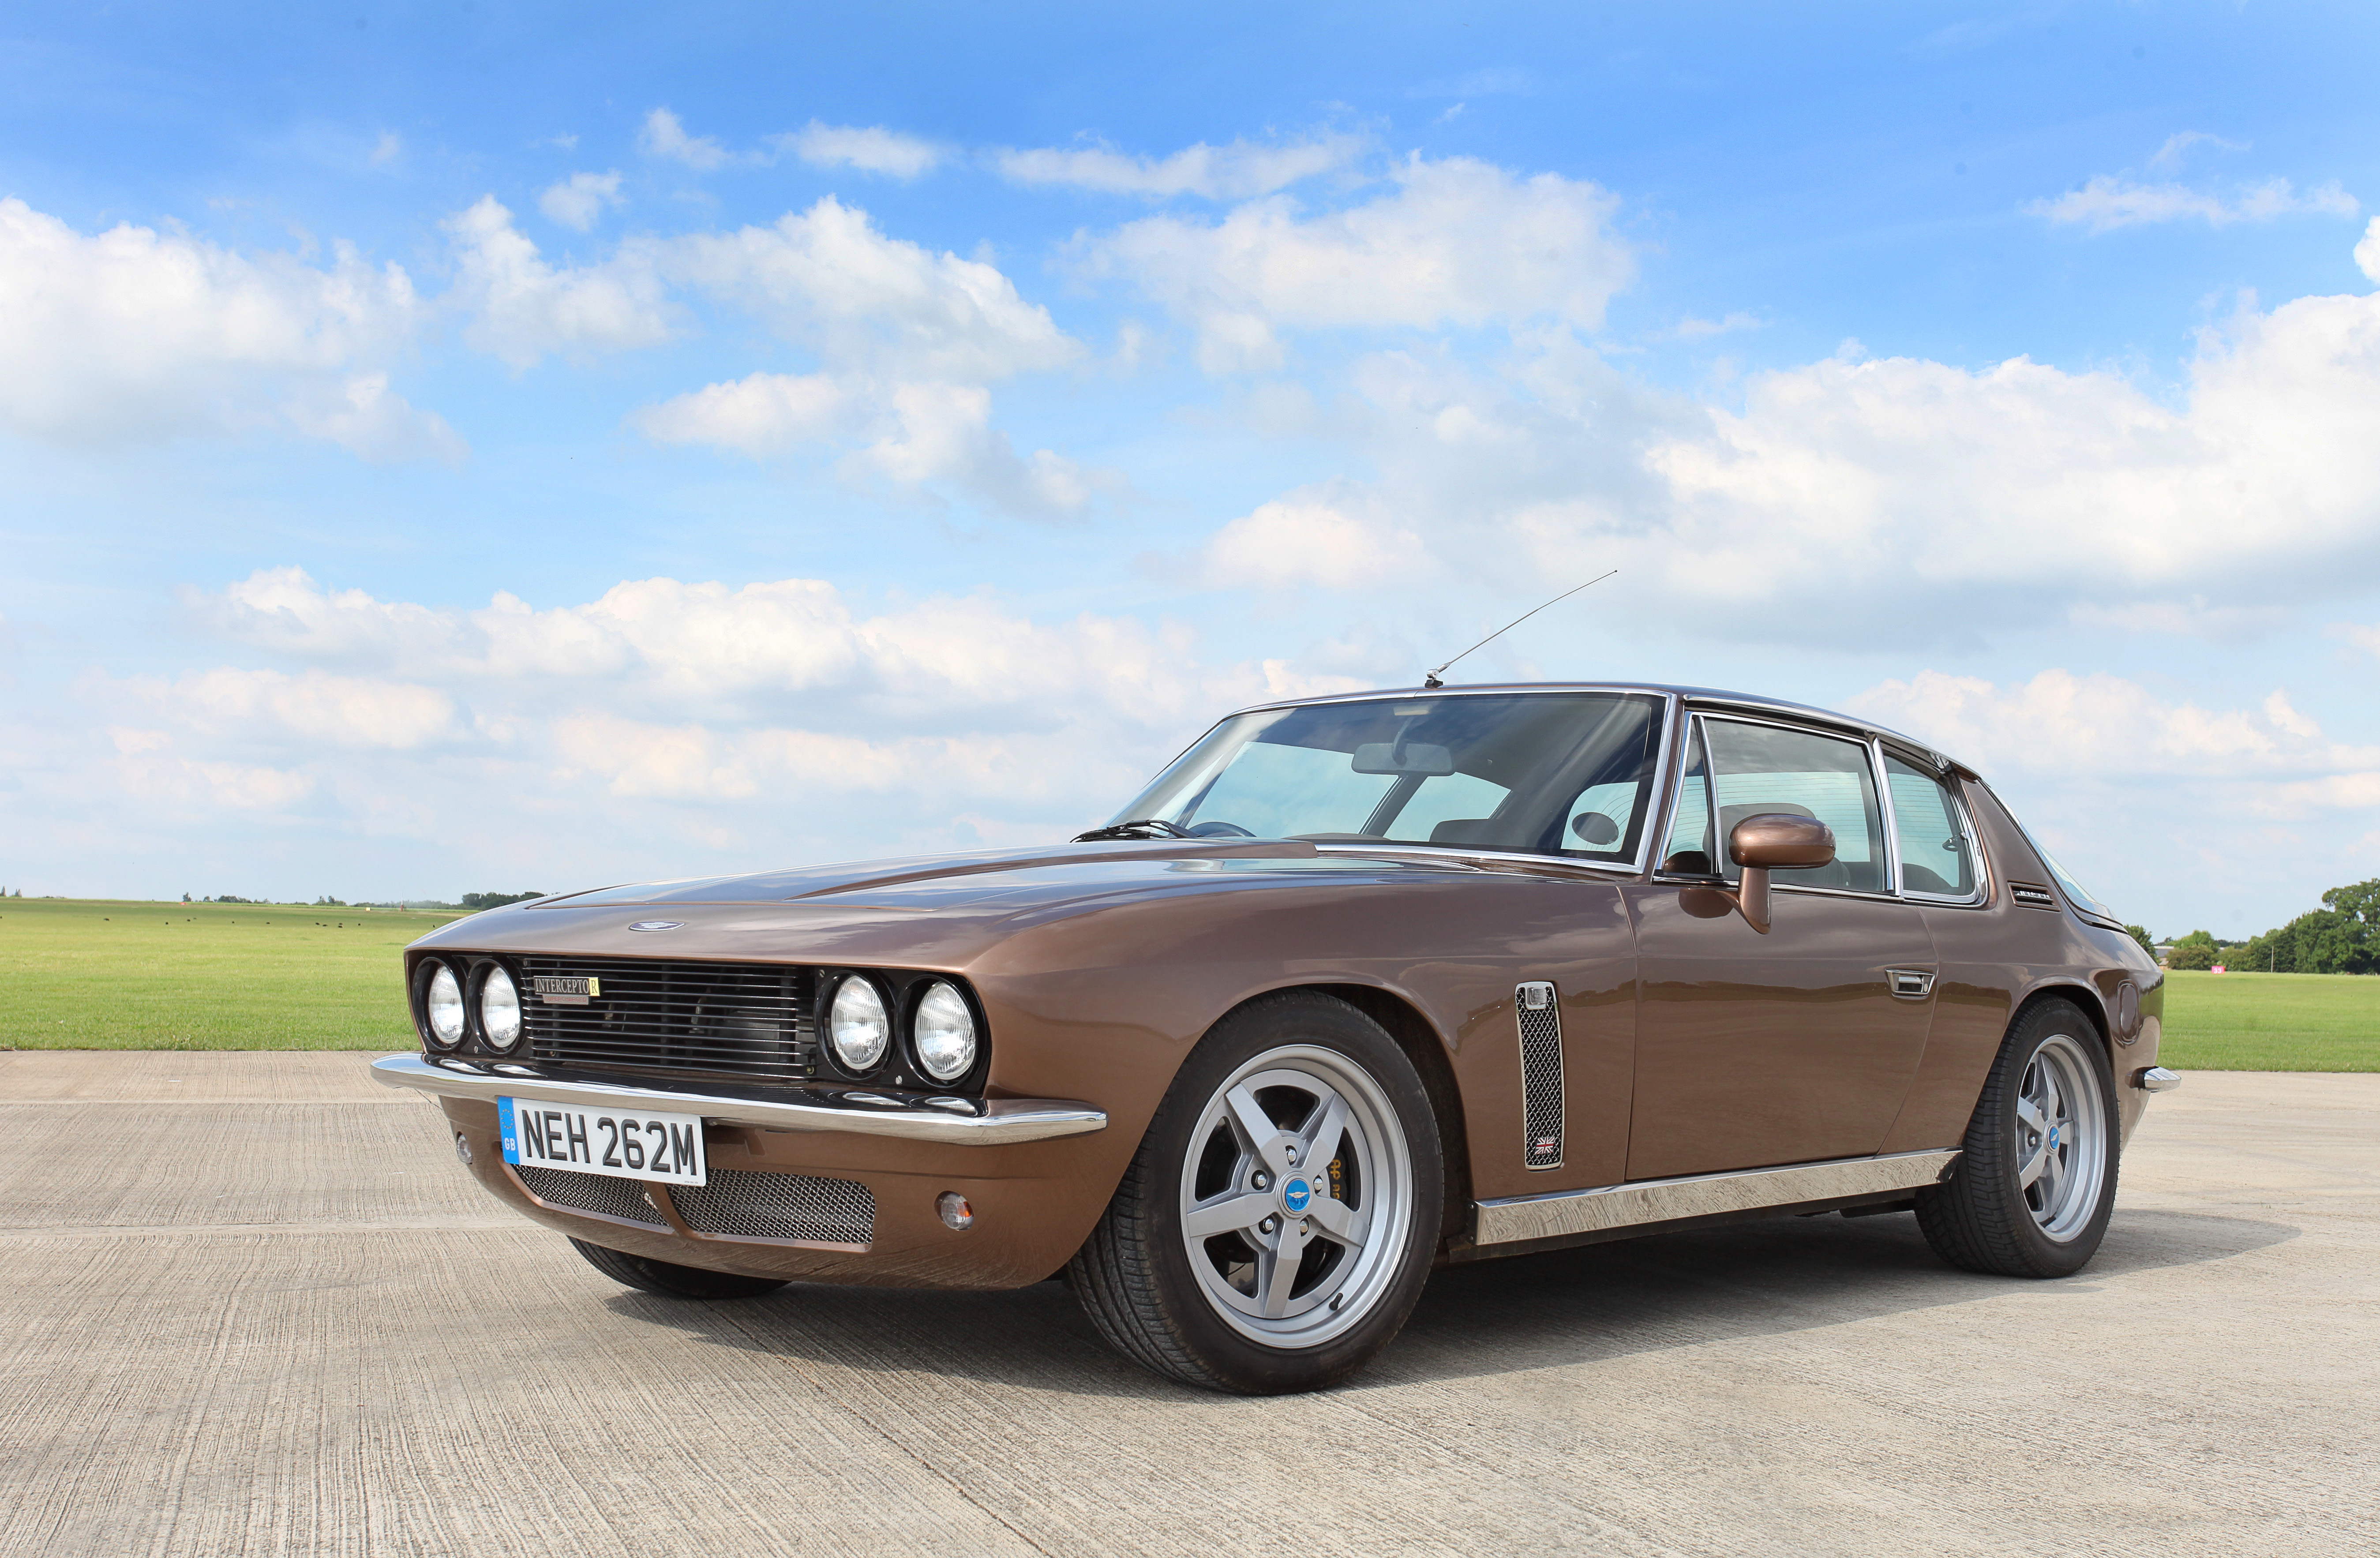 Jensen Interceptor #2